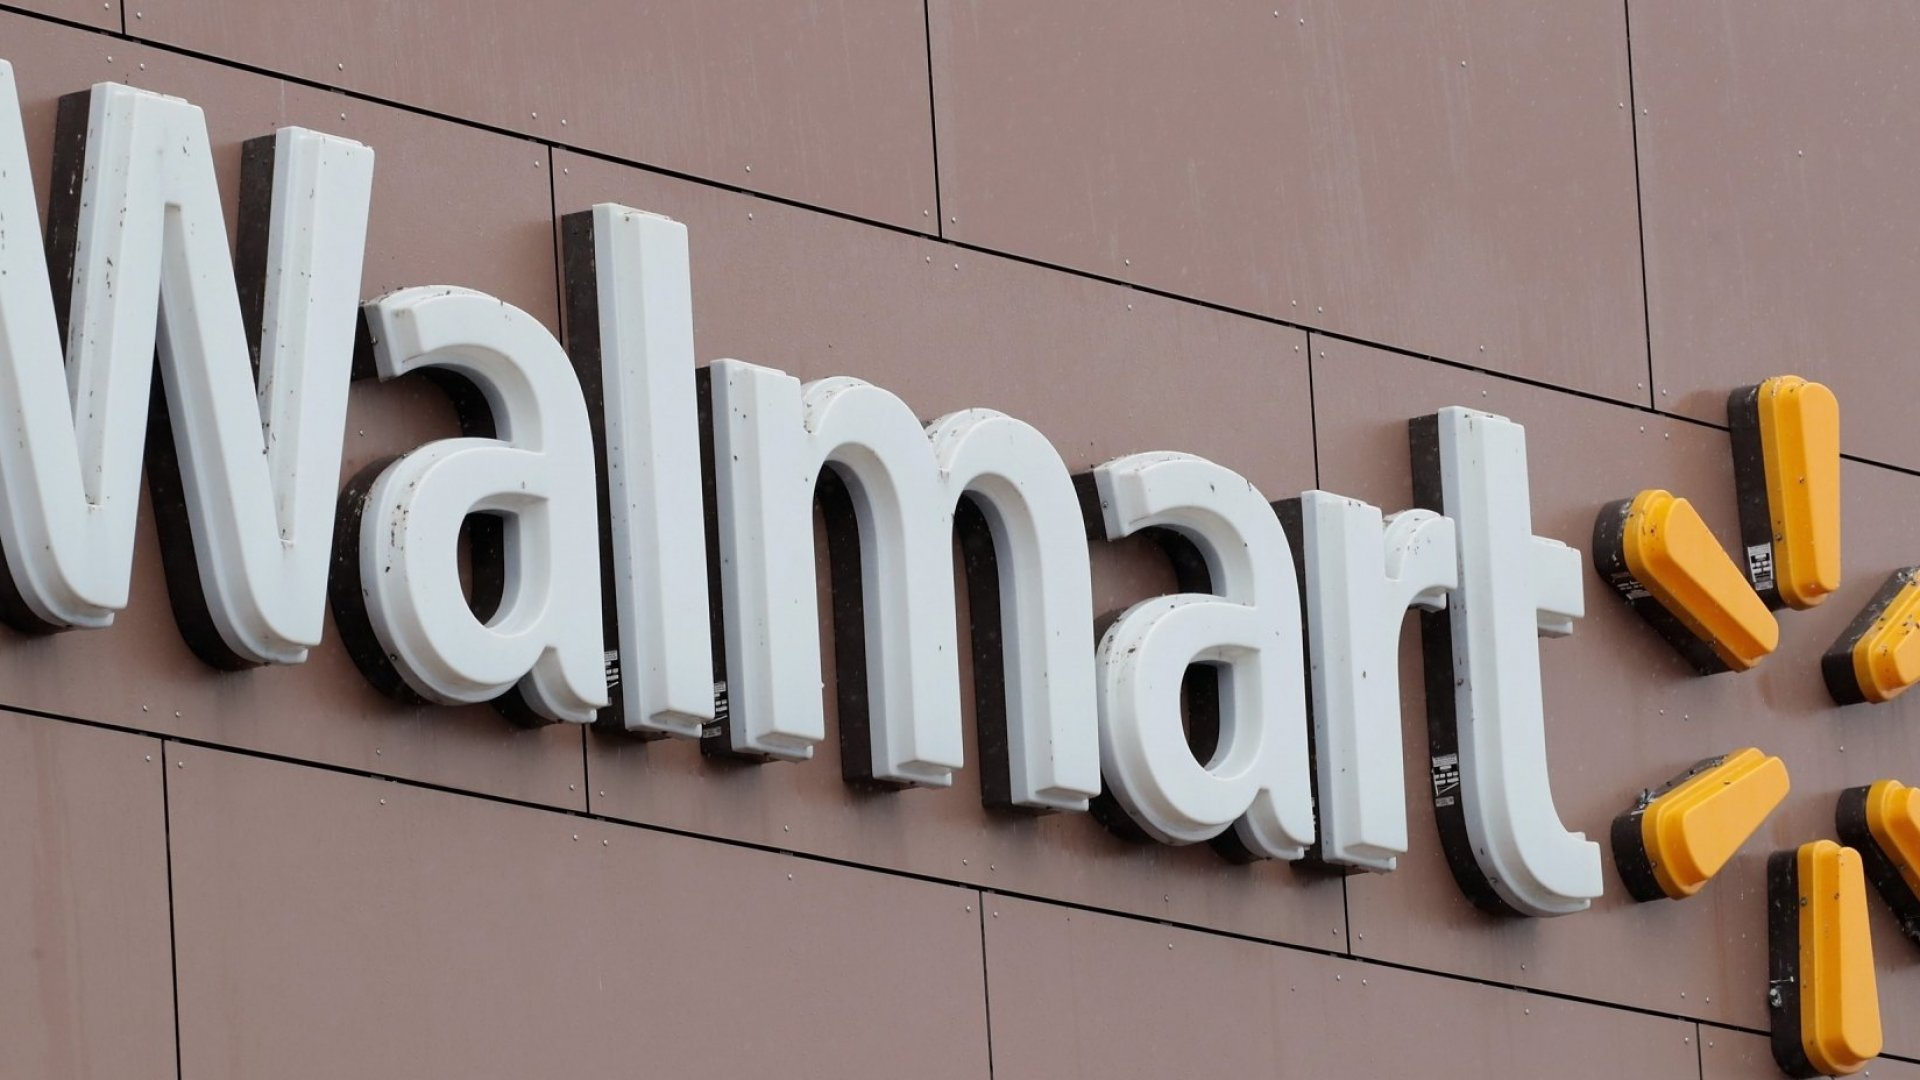 Walmart Is Hiring 150,000 Workers and Giving Out $550 Million in Bonuses